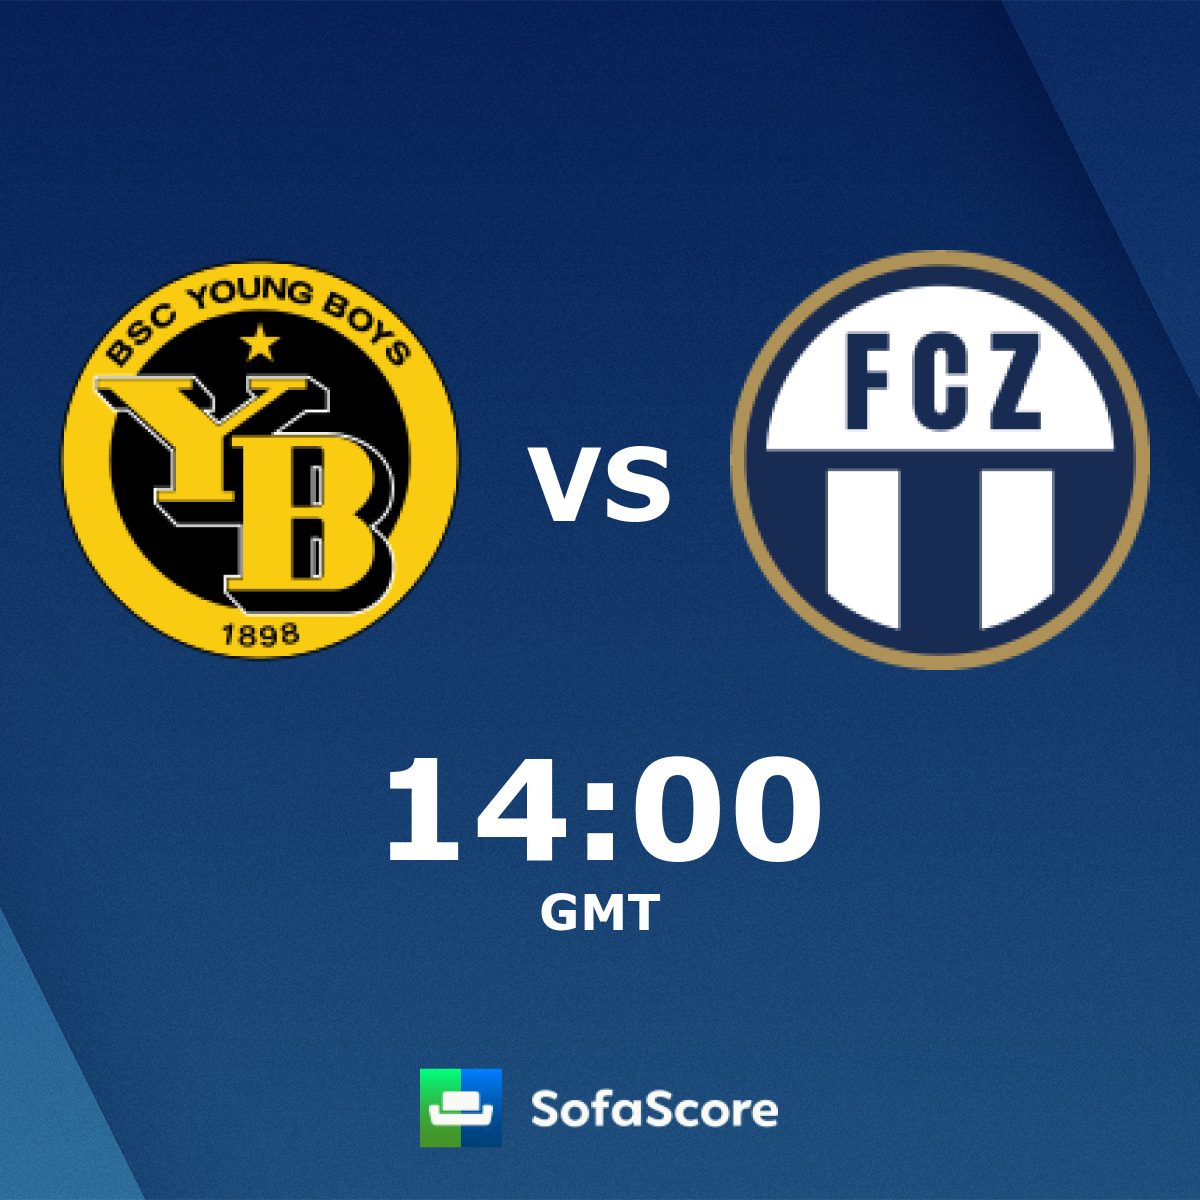 fc copenhagen vs brondby sofascore air lounge 5 in 1 sofa bed review dundee youth celtic the honoroak